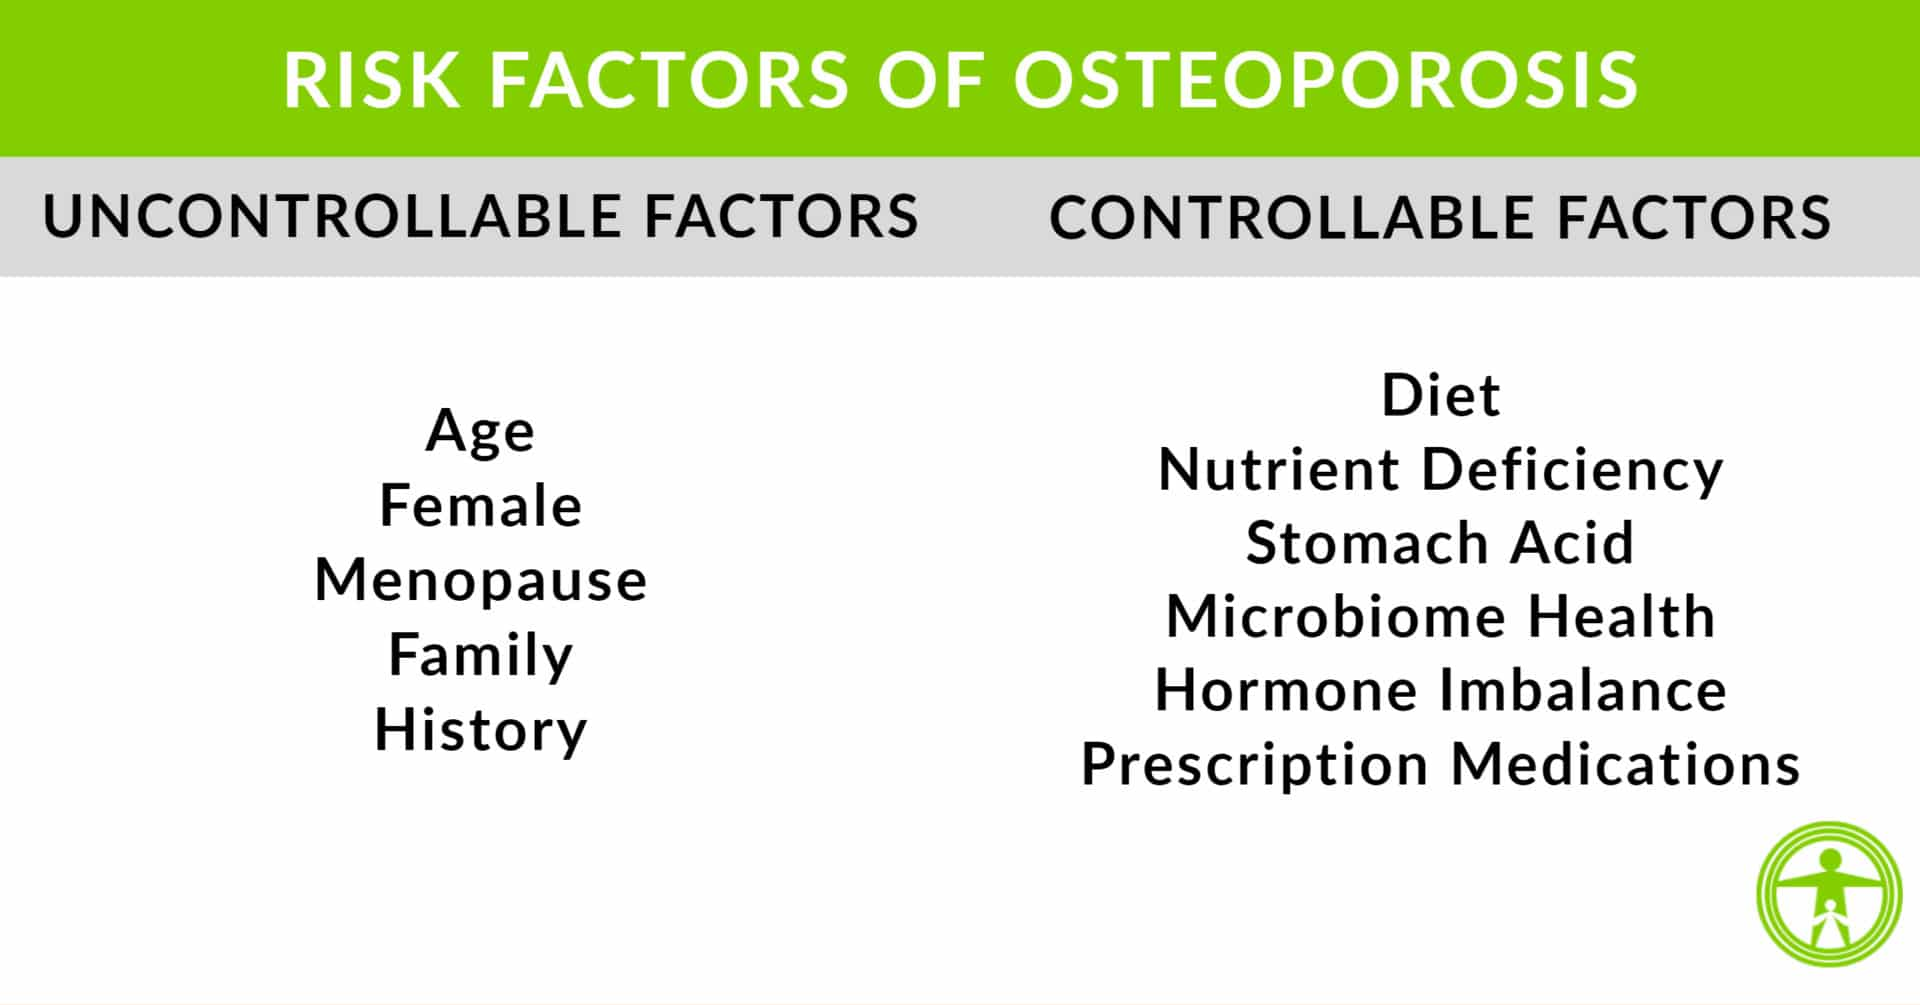 29++ Controllable risk factors for osteoporosis info